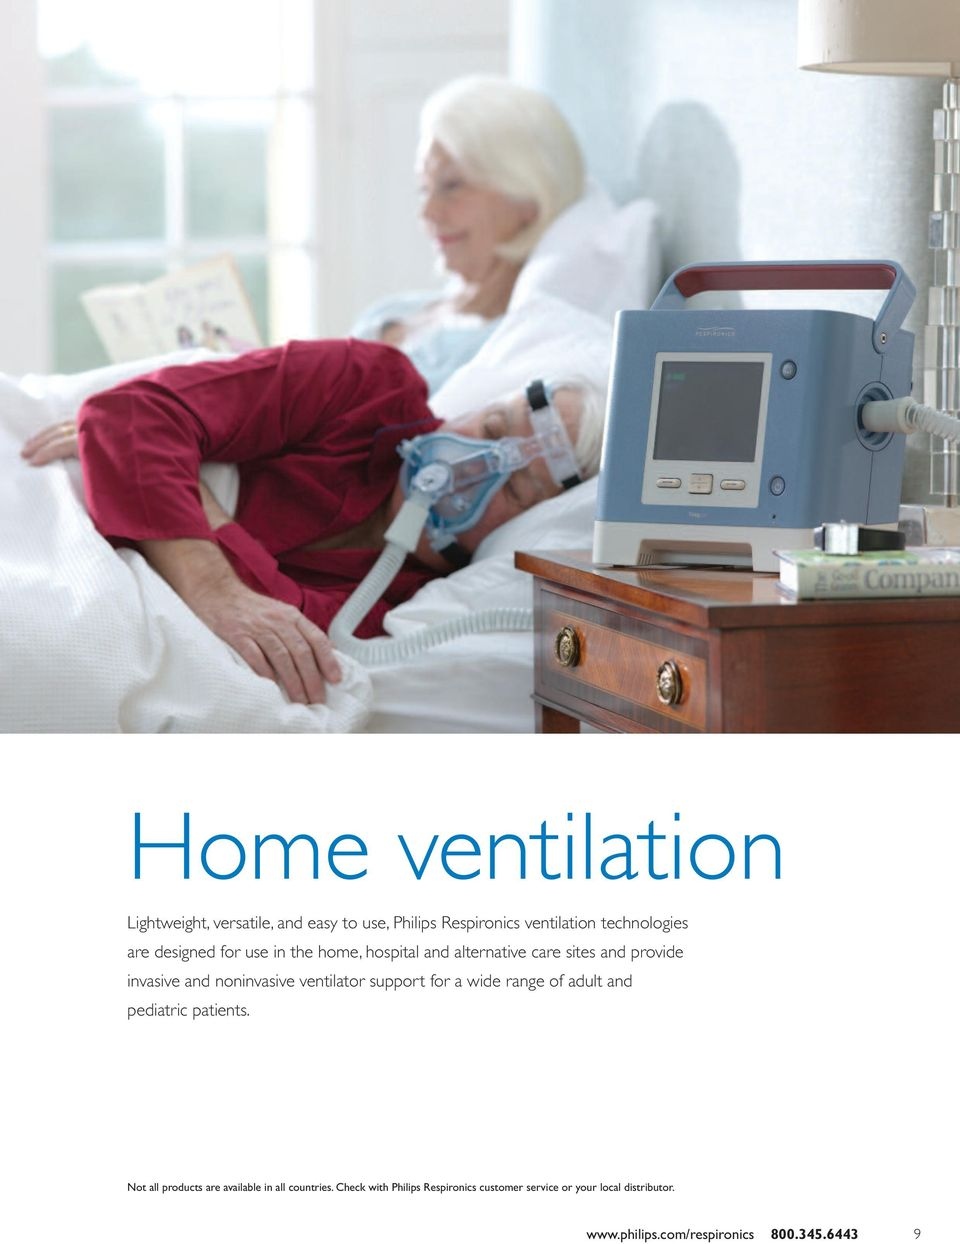 ventilator support for a wide range of adult and pediatric patients.